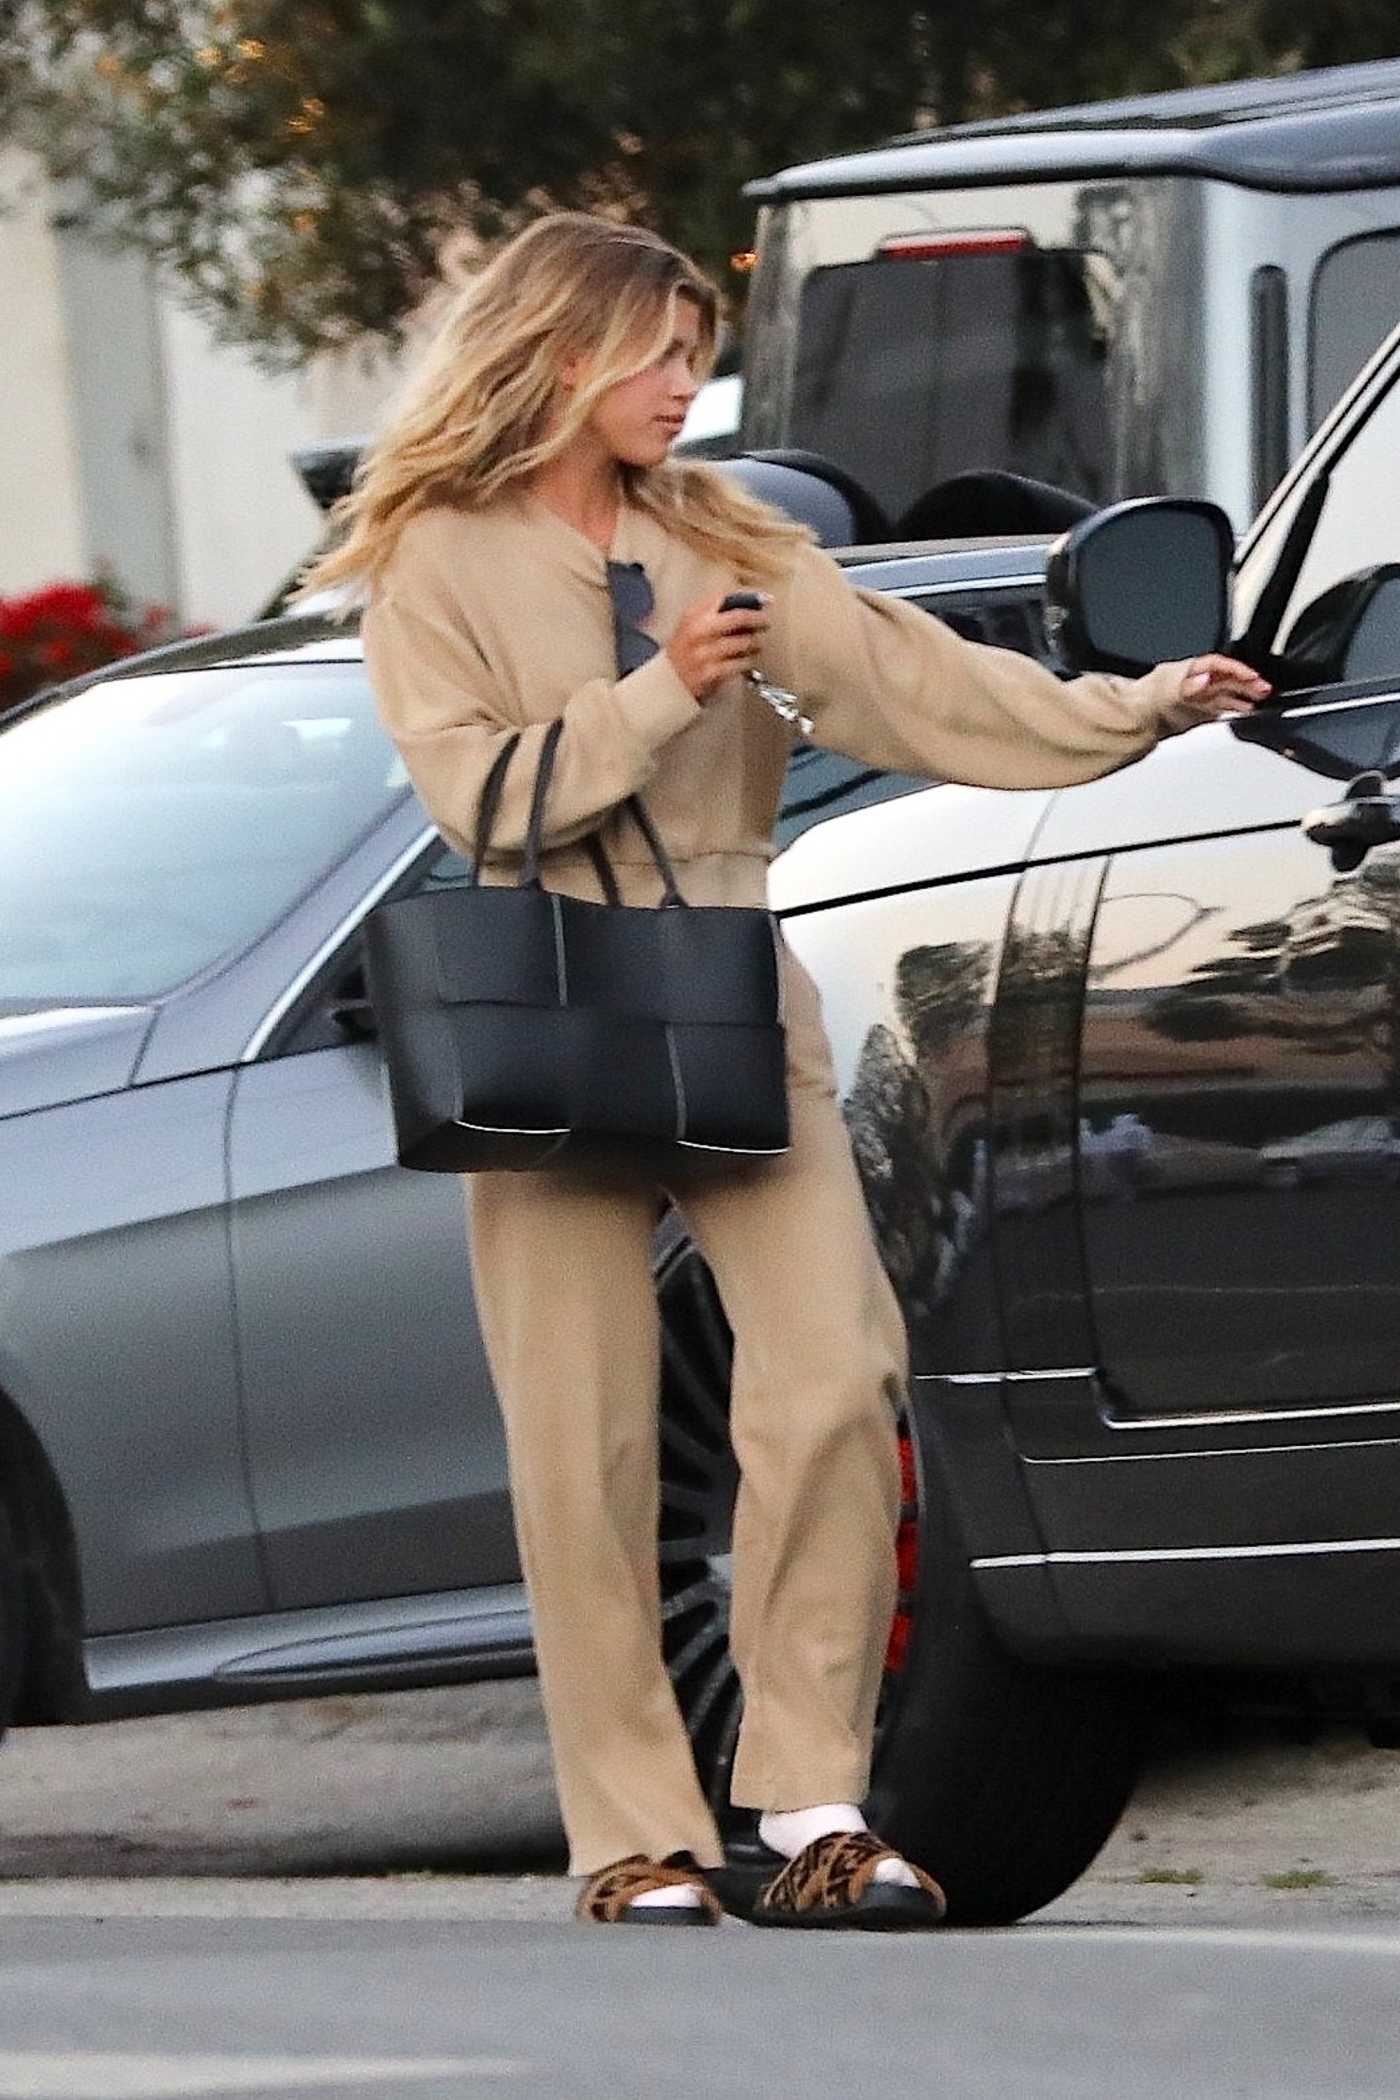 Sofia Richie in a Beige Sweatsuit Was Seen Out in Malibu 08/09/2020